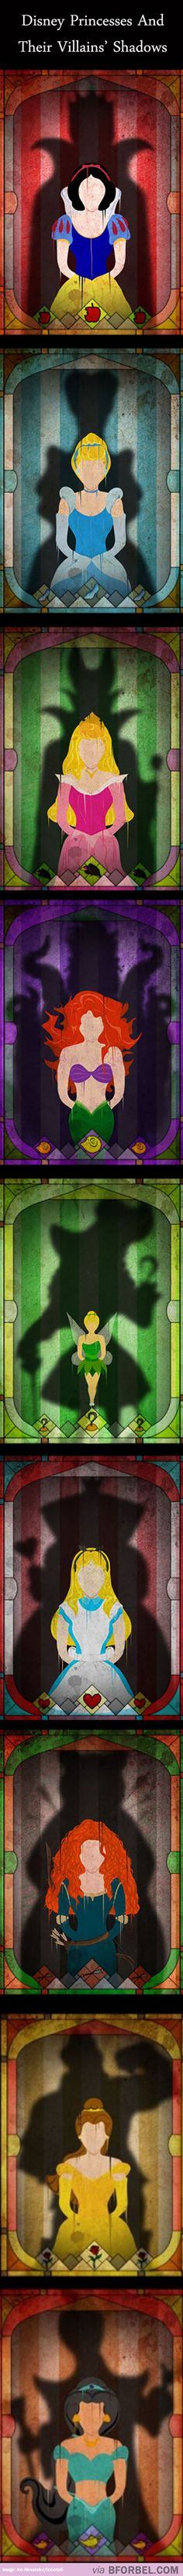 Disney princess/ villain  shadows